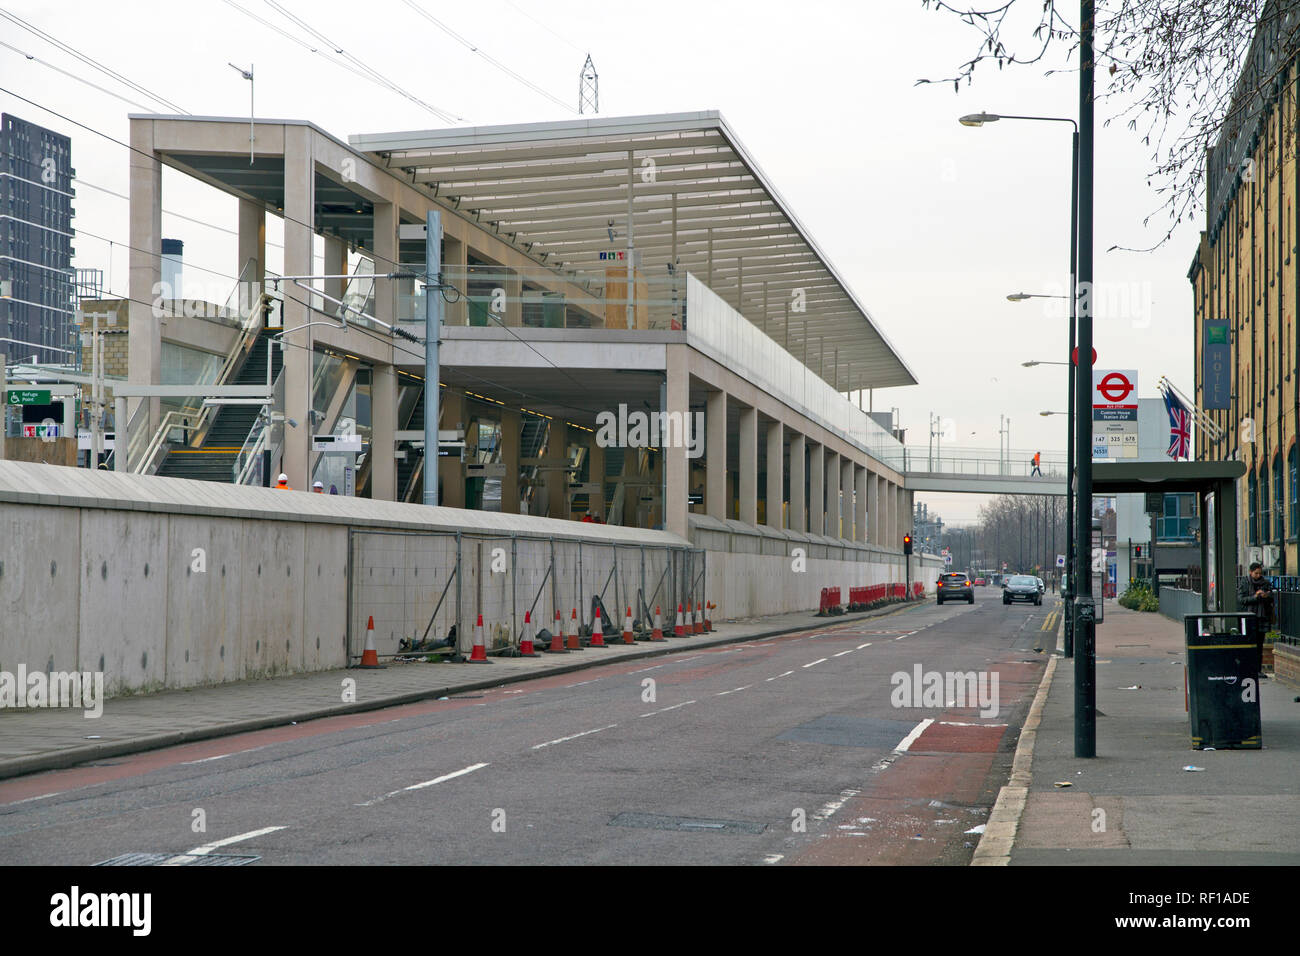 The new Elizabeth line station at Custom House in east London. - Stock Image